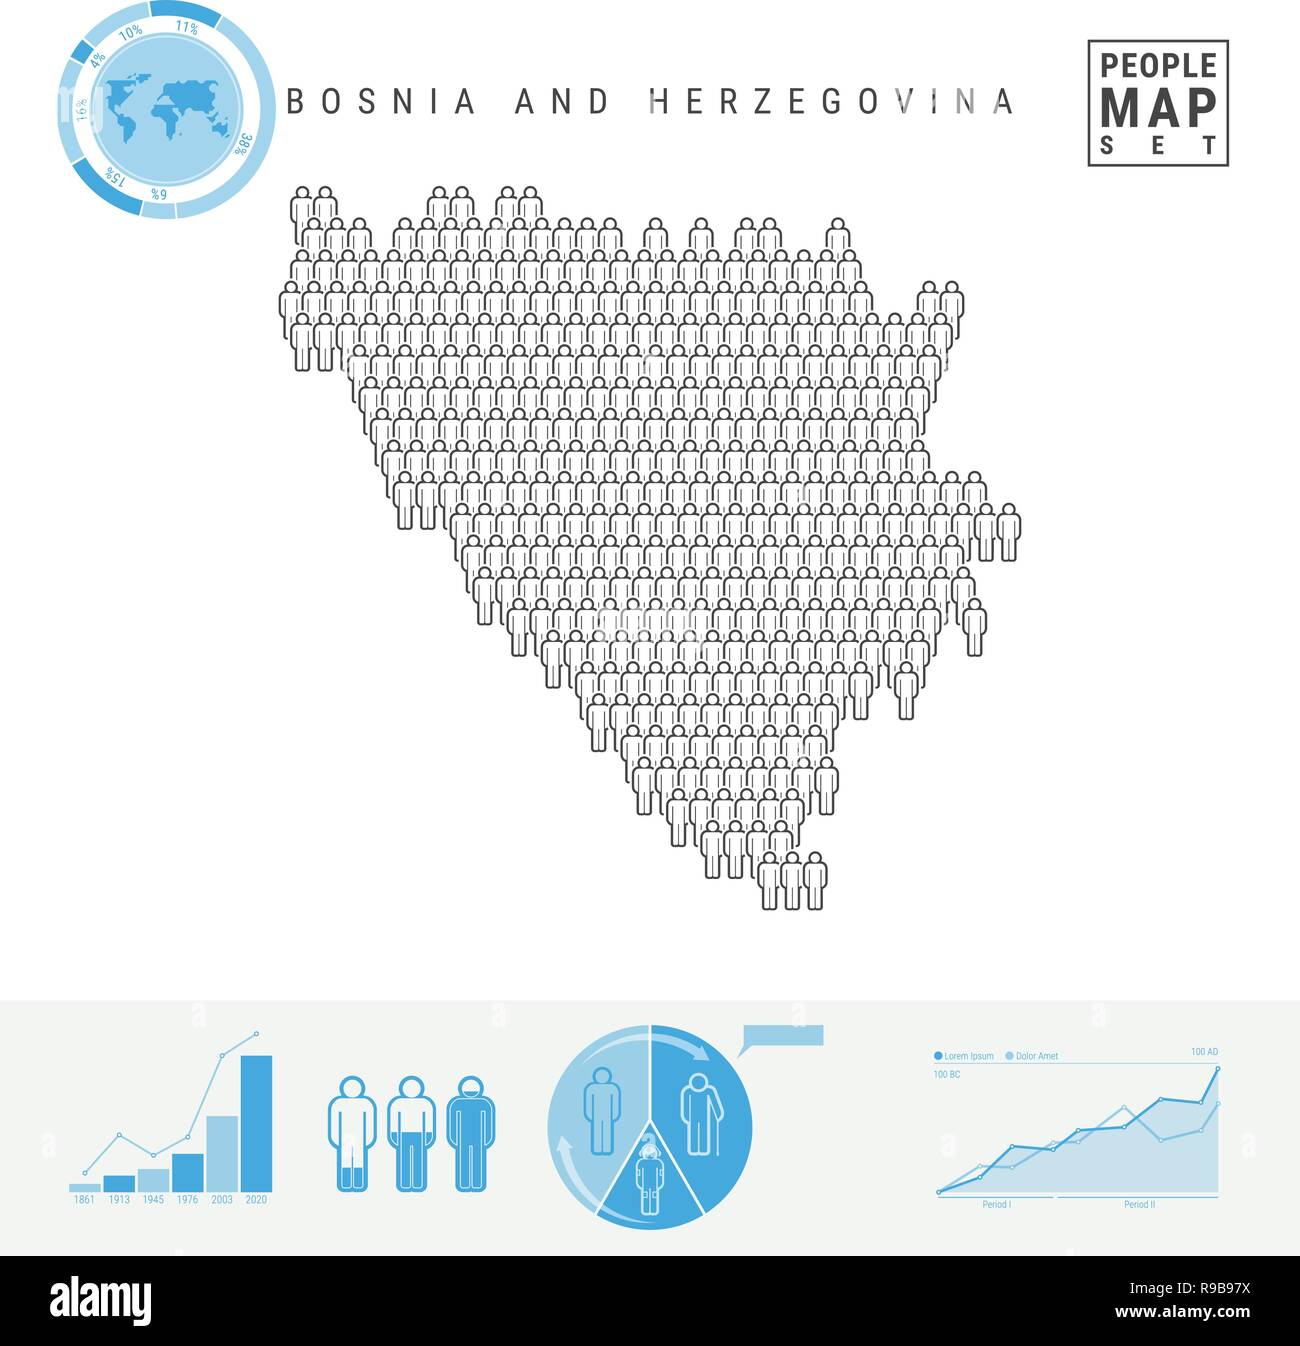 Bosnia and Herzegovina People Icon Map. People Crowd in the Shape of a Map of Bosnia and Herzegovina. Stylized Silhouette. Population Growth, Aging In - Stock Vector